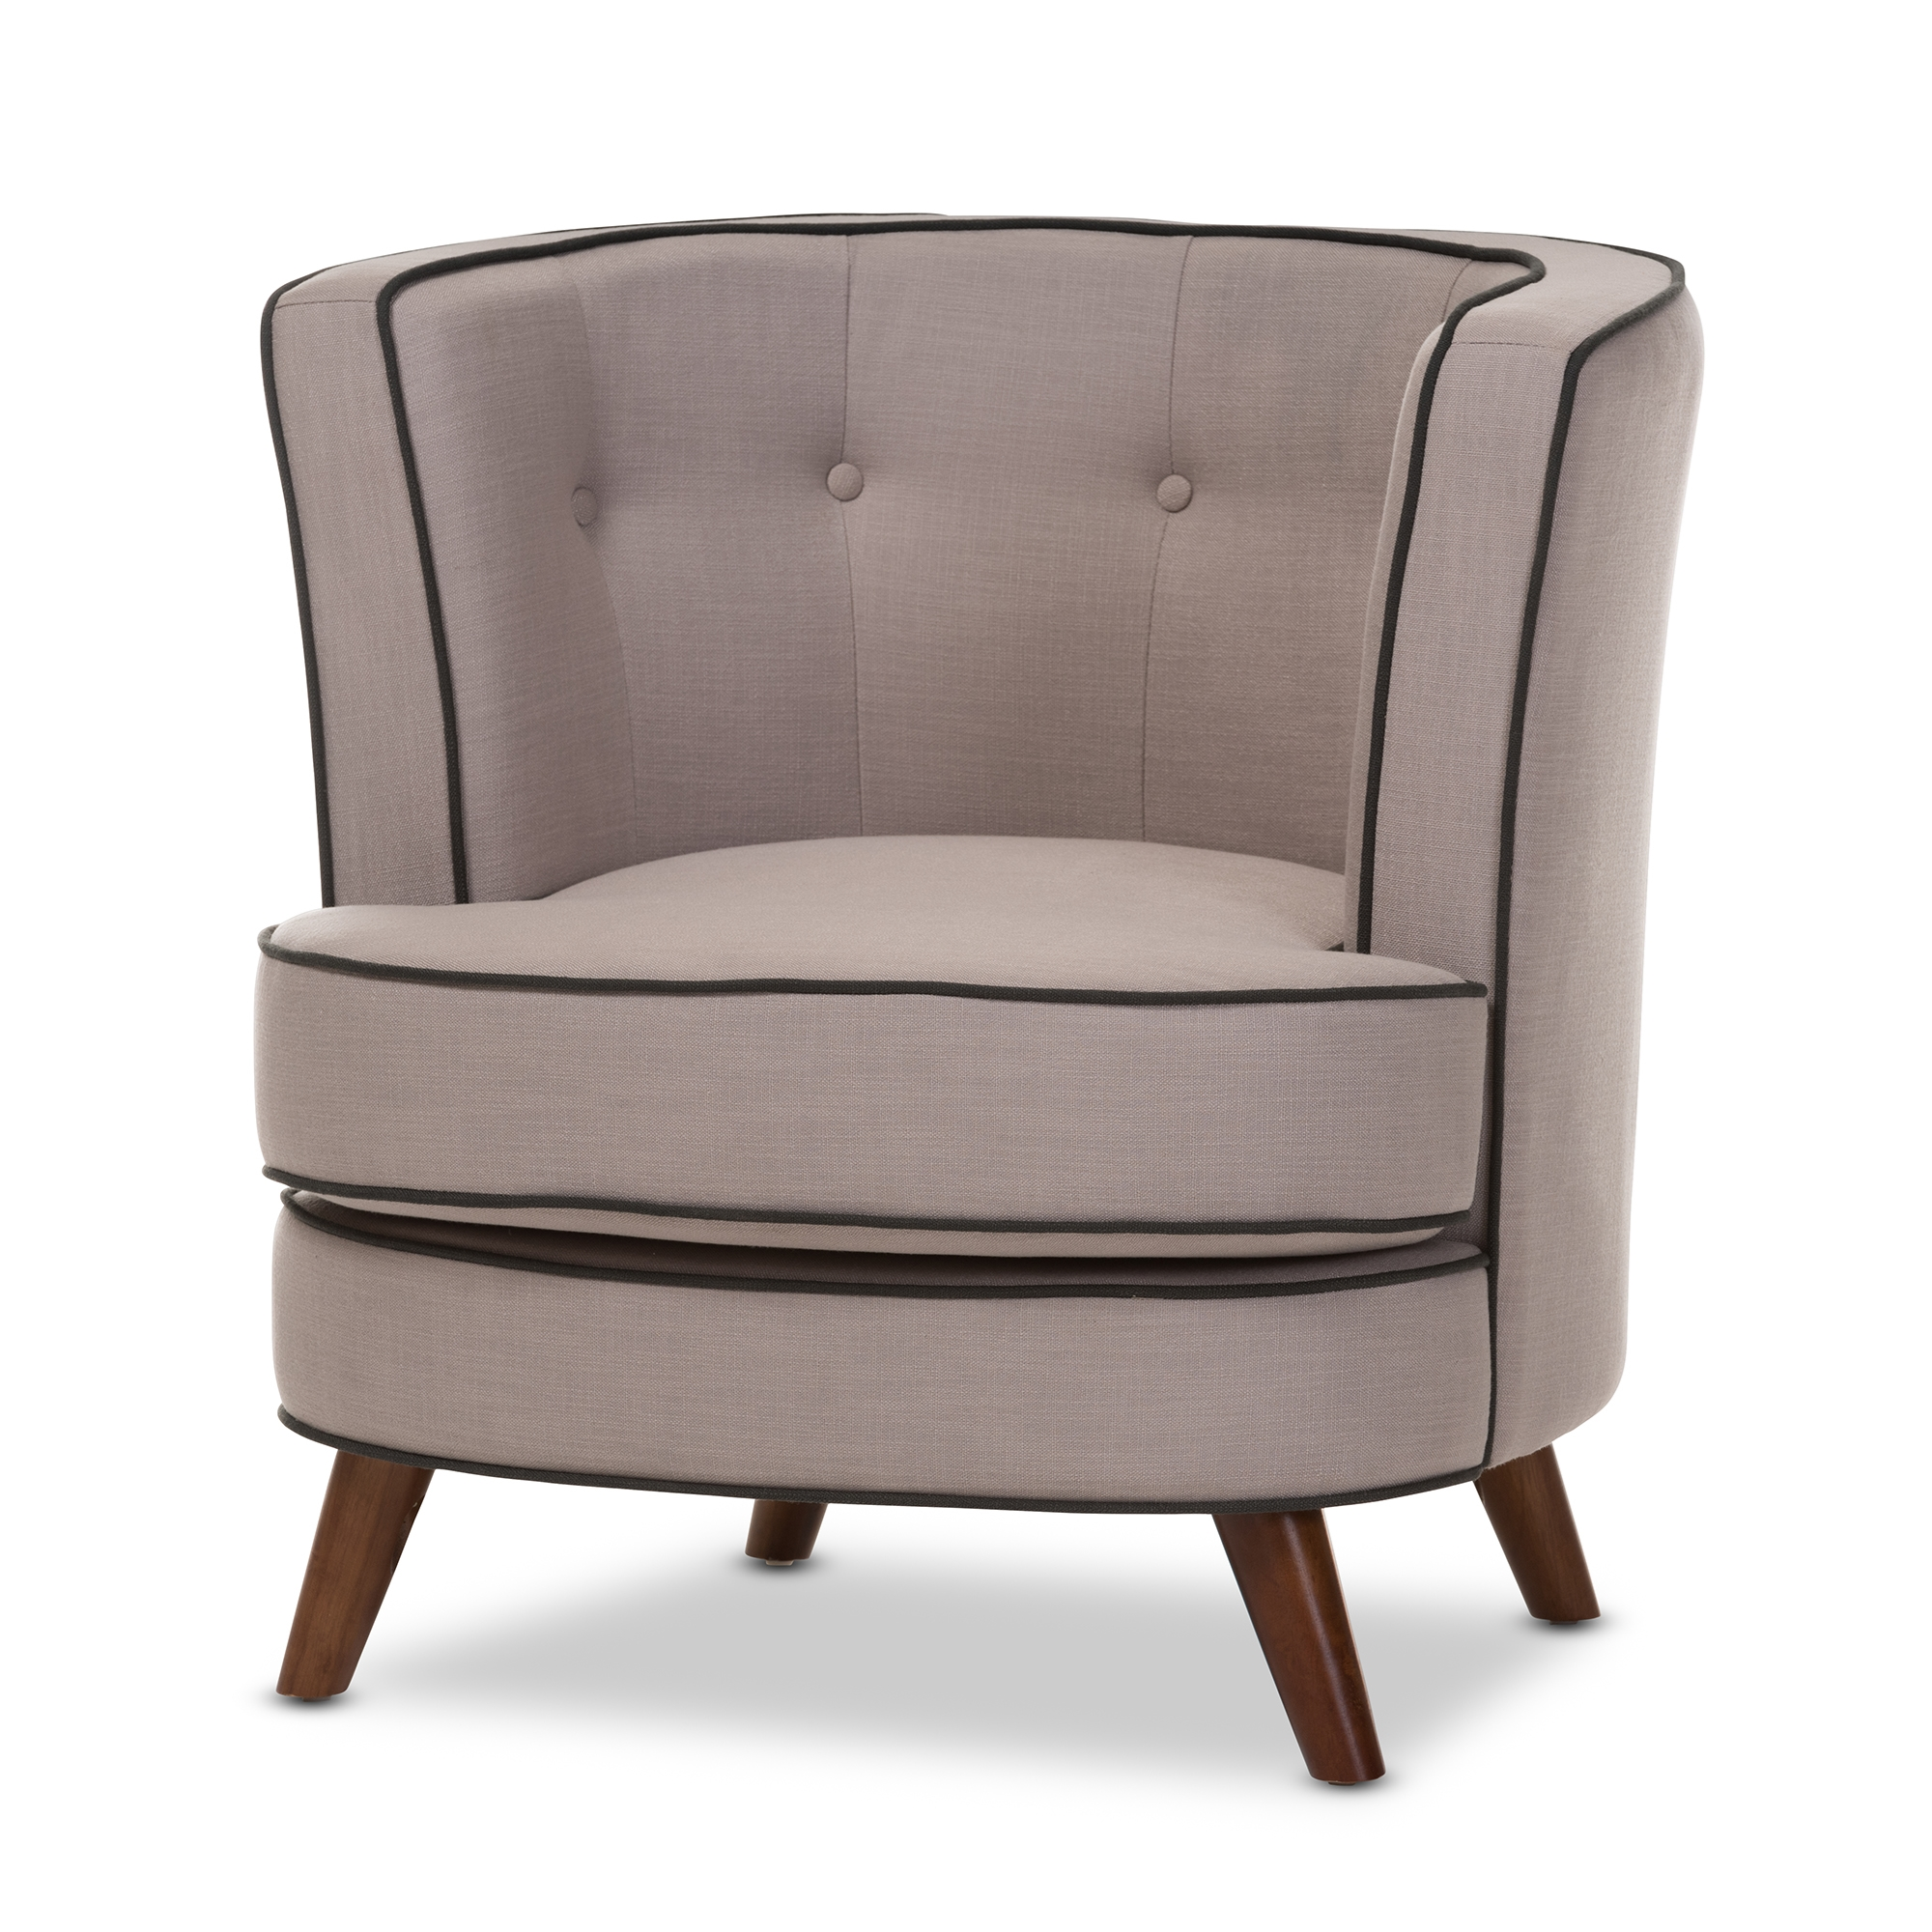 Baxton Studio Albany Mid Century Modern Beige Fabric Upholstered Walnut  Wood Button Tufted Accent Chair